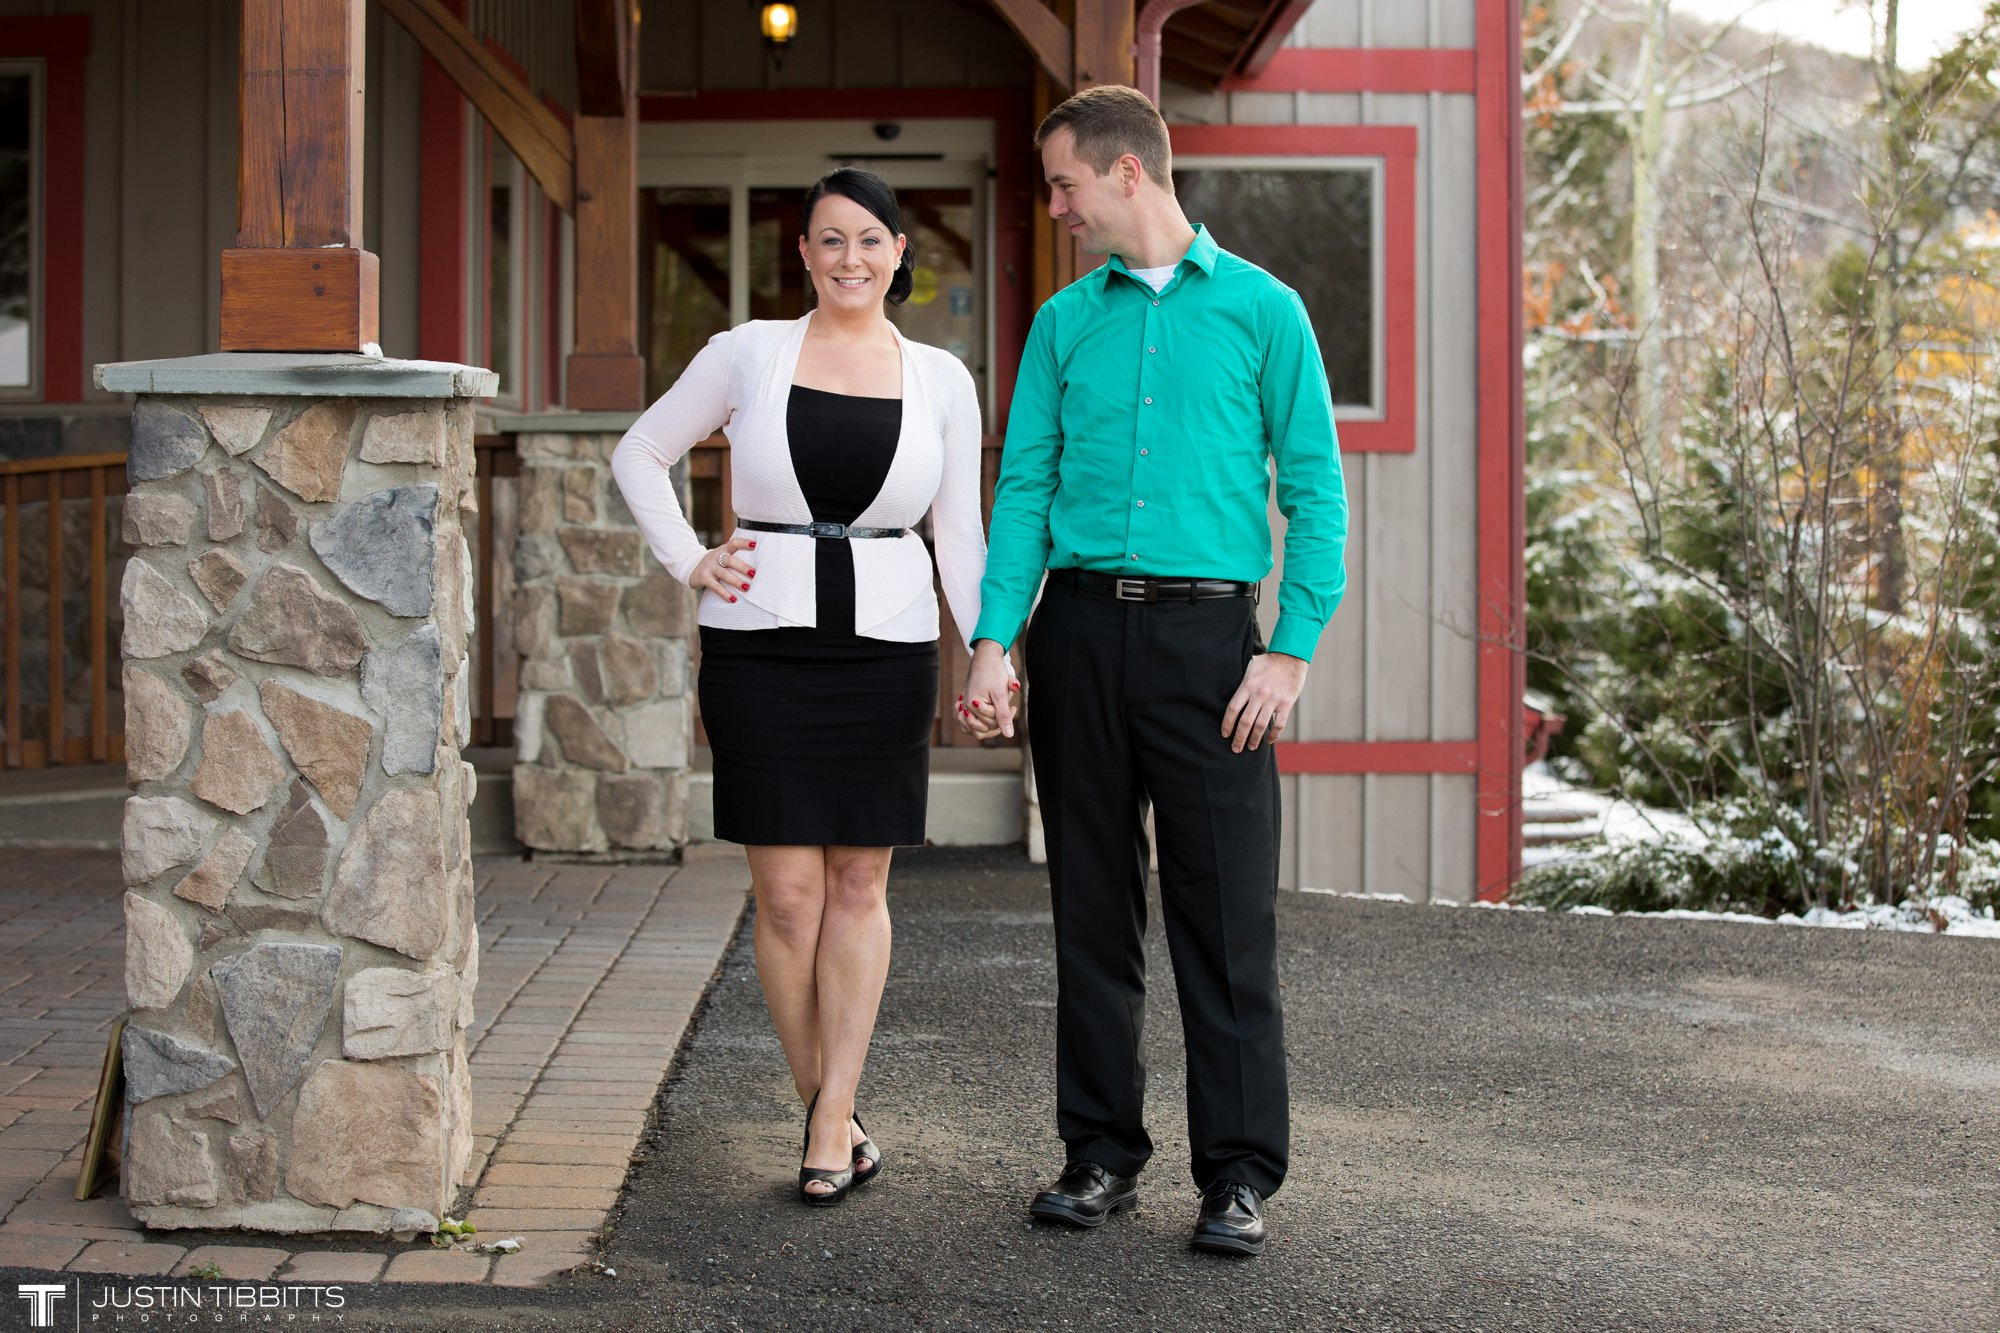 Justin Tibbitts Photography Kristie and Gregs Windham Mountain Resort Engagement Shoot-20